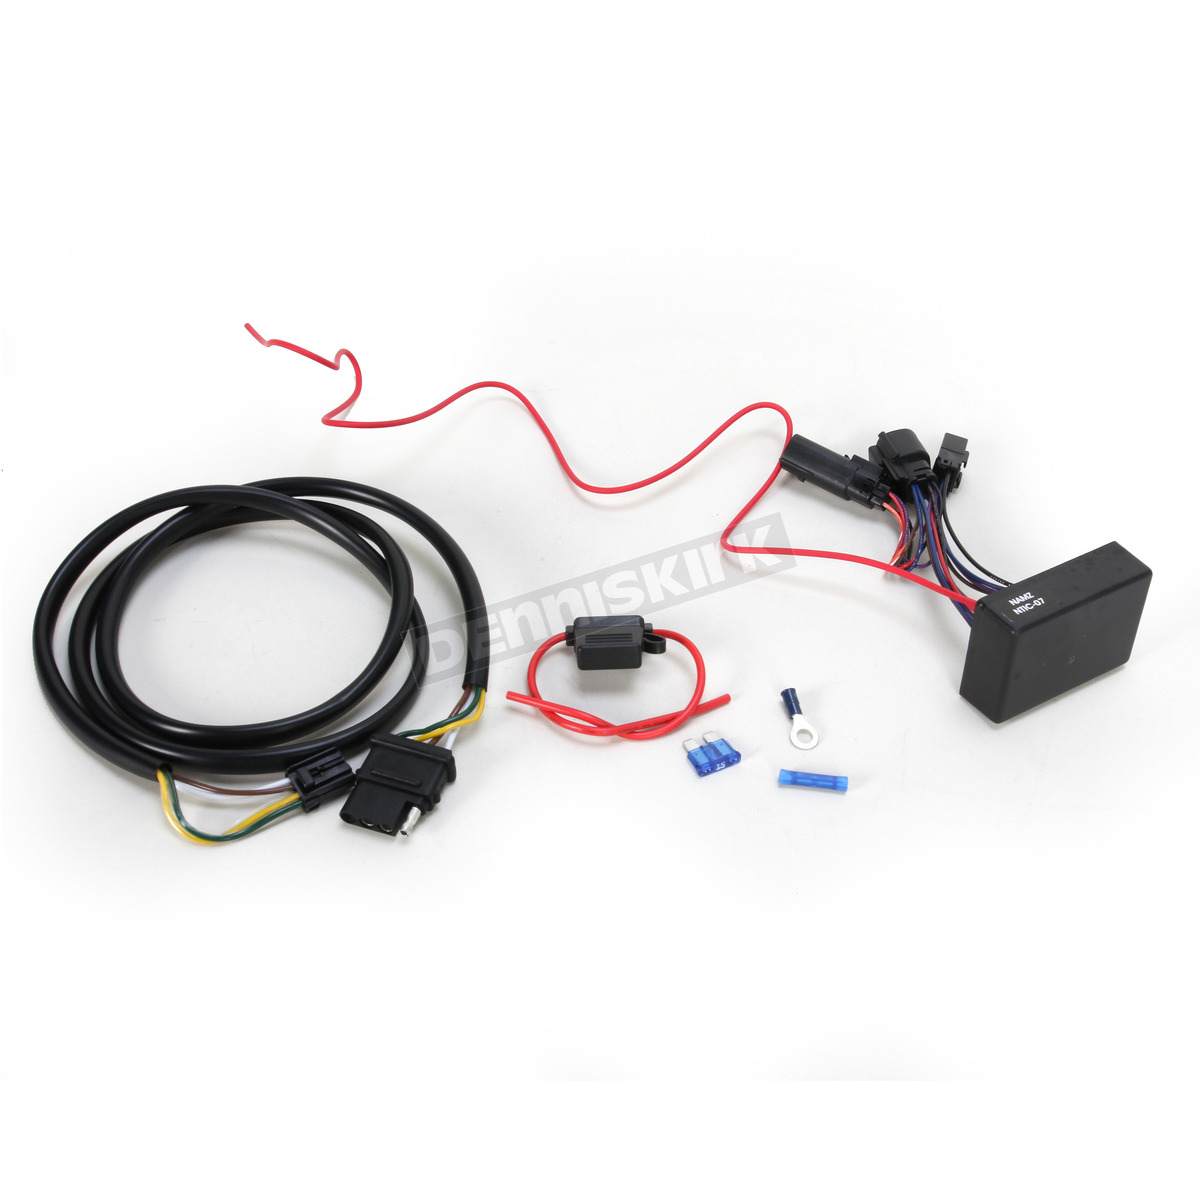 Motorcycle Trailer Wiring Kit Free Diagram For You Lights Adapters At Parts Superstore Khrome Werks Plug N Play 720752 Guide Honda